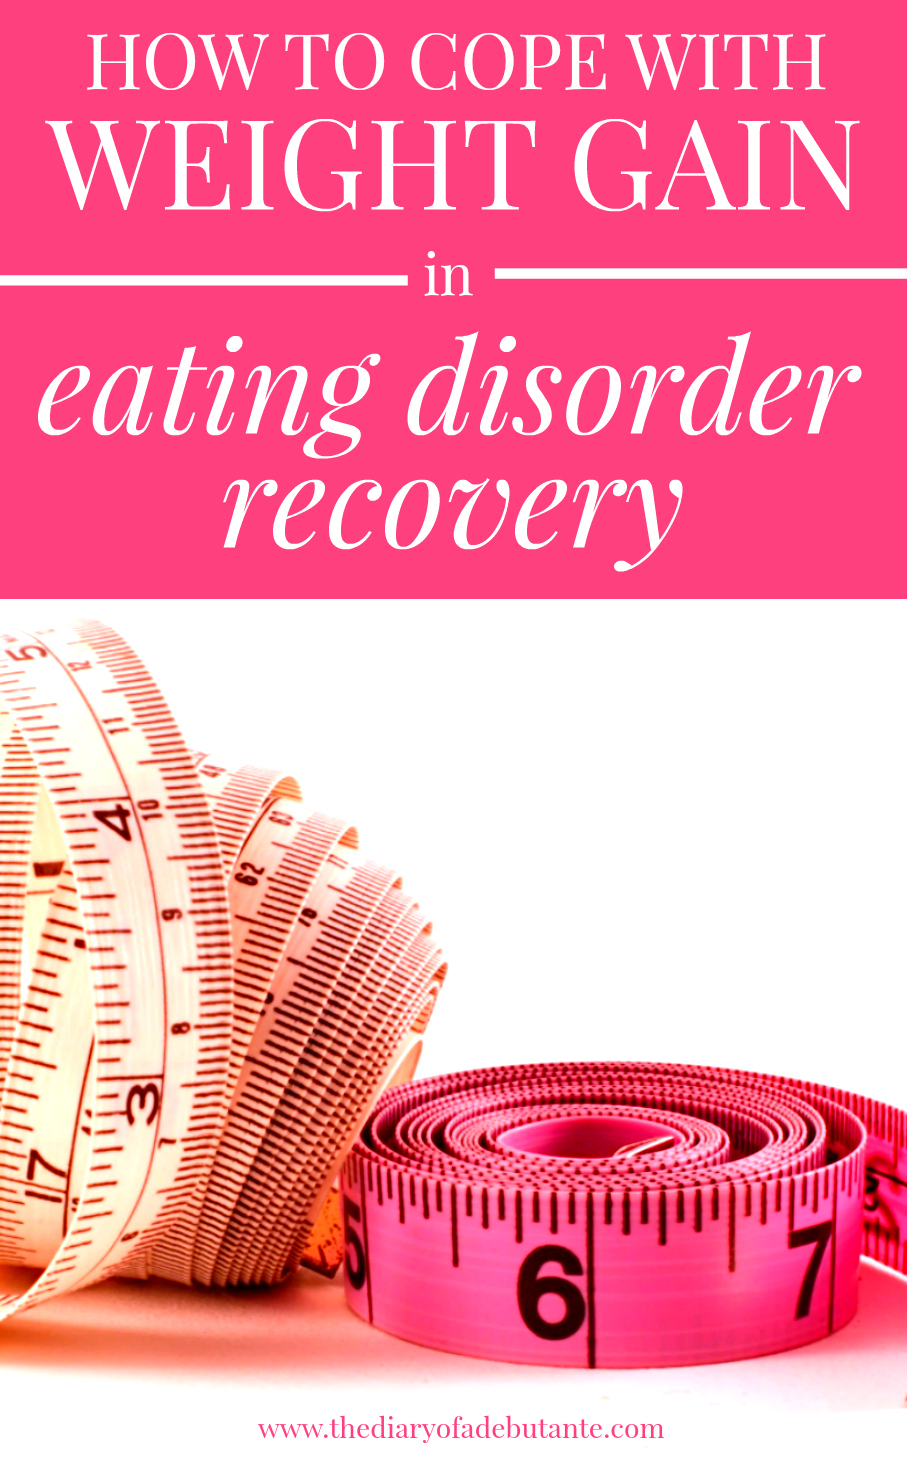 Commonly used strategies for coping with weight gain in eating disorder recovery